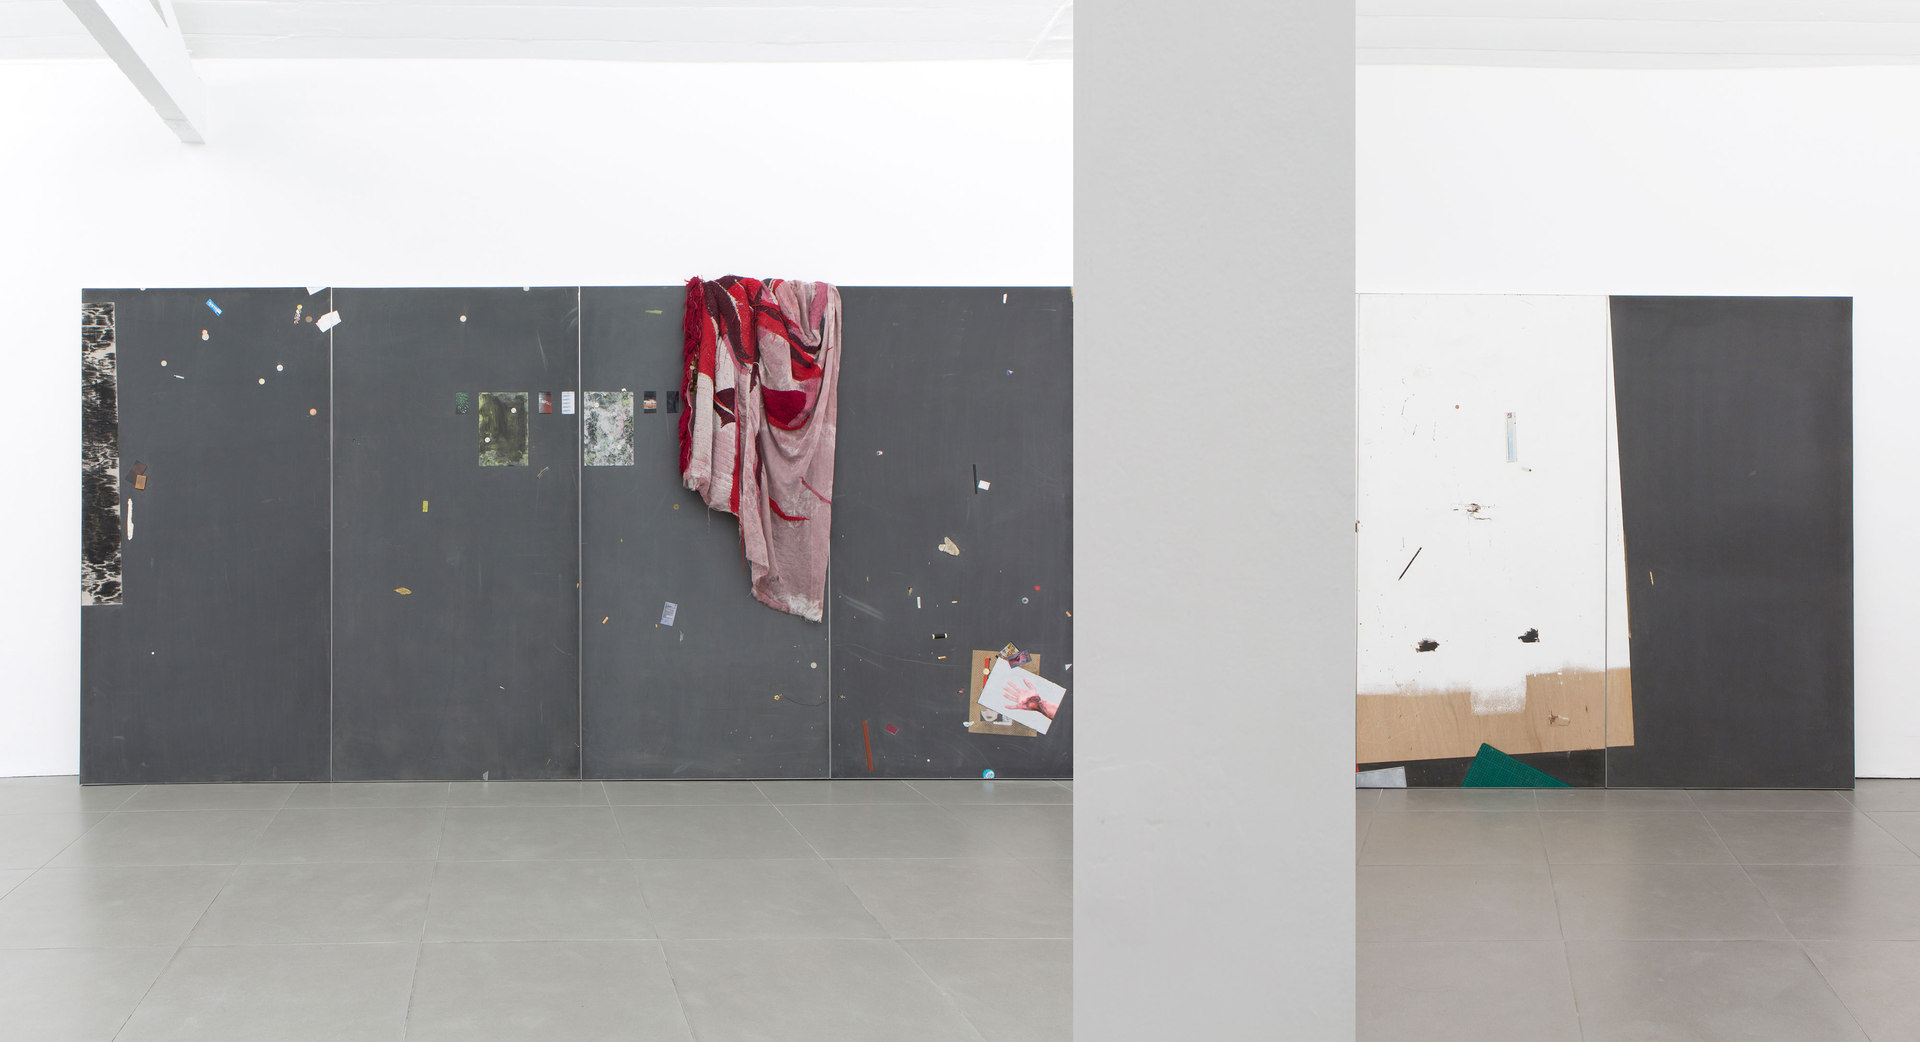 Kate Mackeson & Henrik Potter, 'landlords are not currently collecting rent in self-love', Henrik Potter Installation View, 2016, Cell Project Space